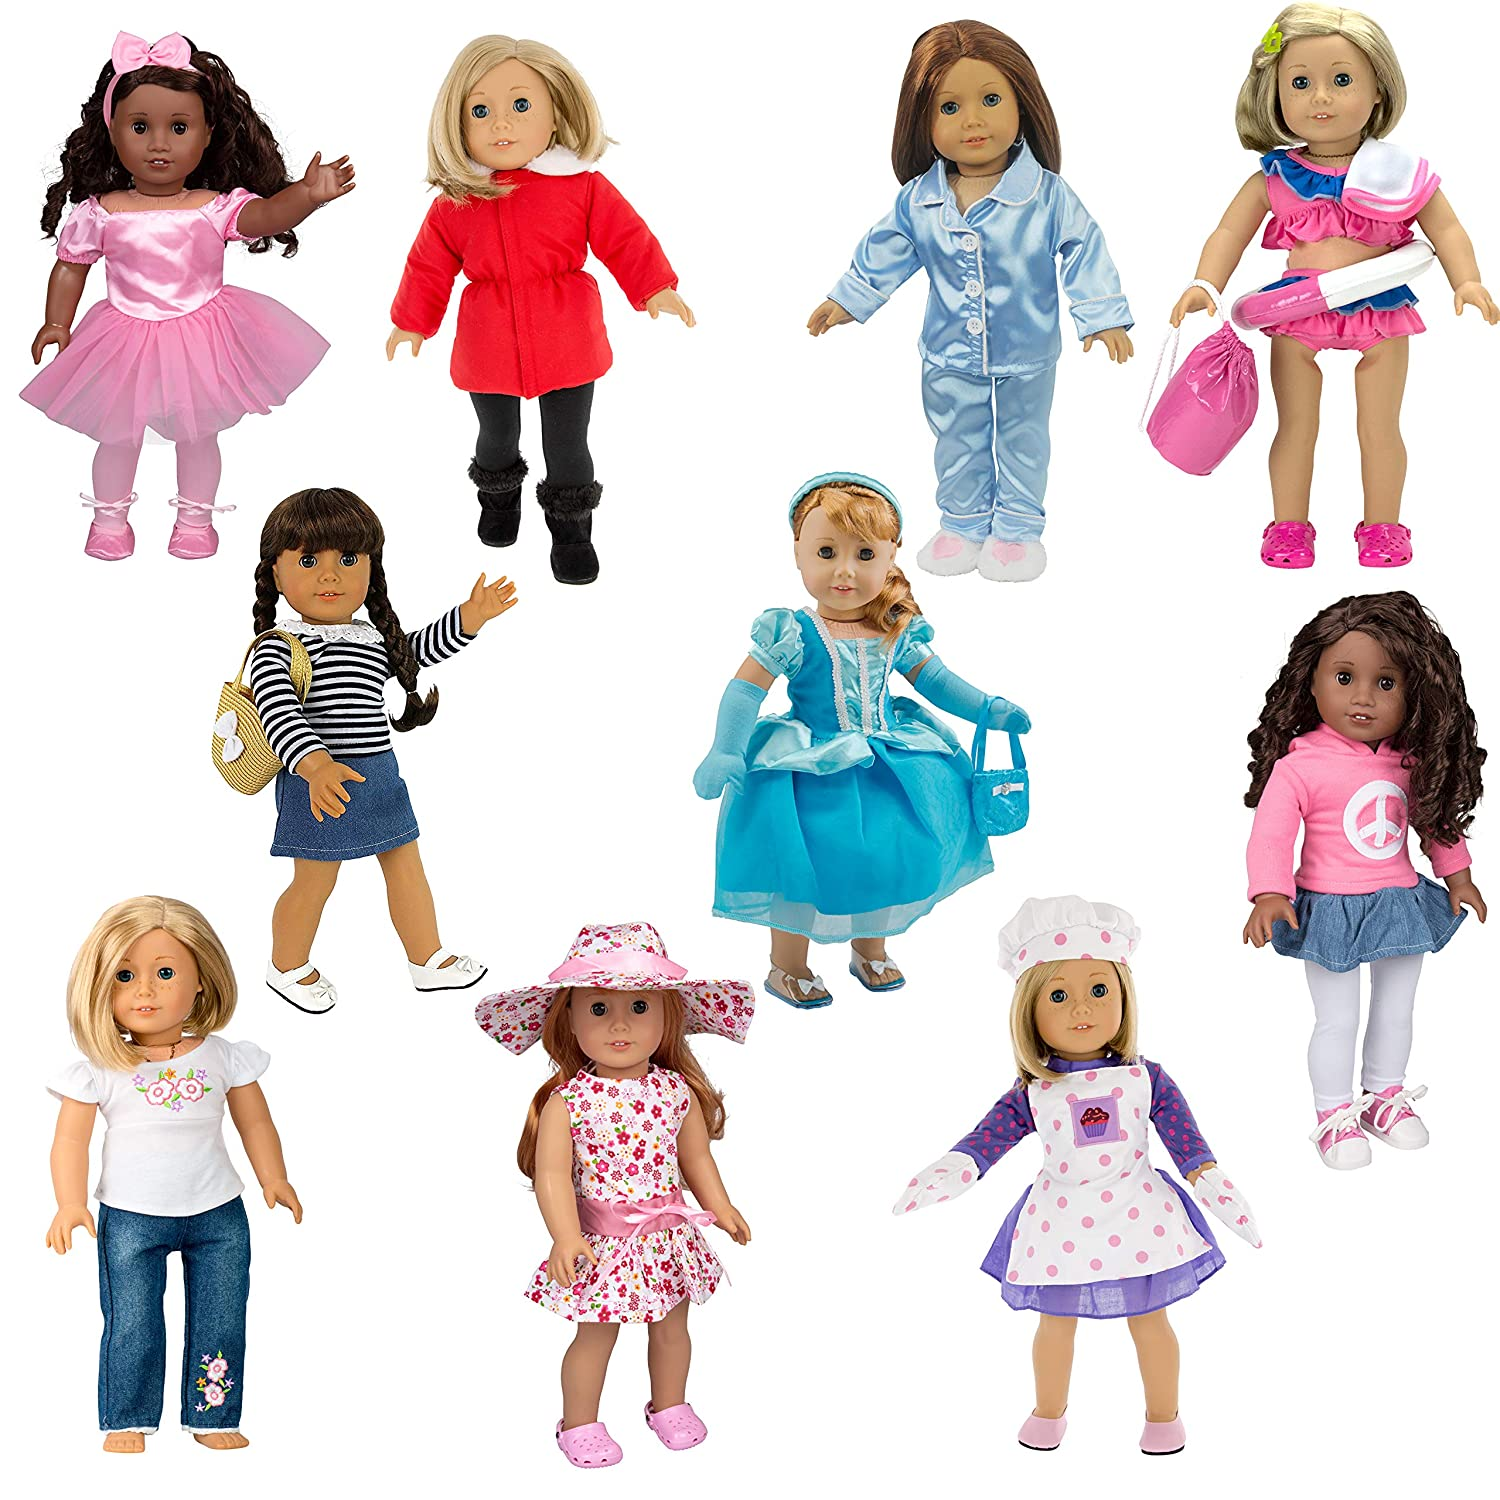 Dress Along Dolly 10 Unique Outfits Variety Pack for American Girl and Other 18 Inch Dolls - Total 40 Pcs - Shoes and Accessories Included